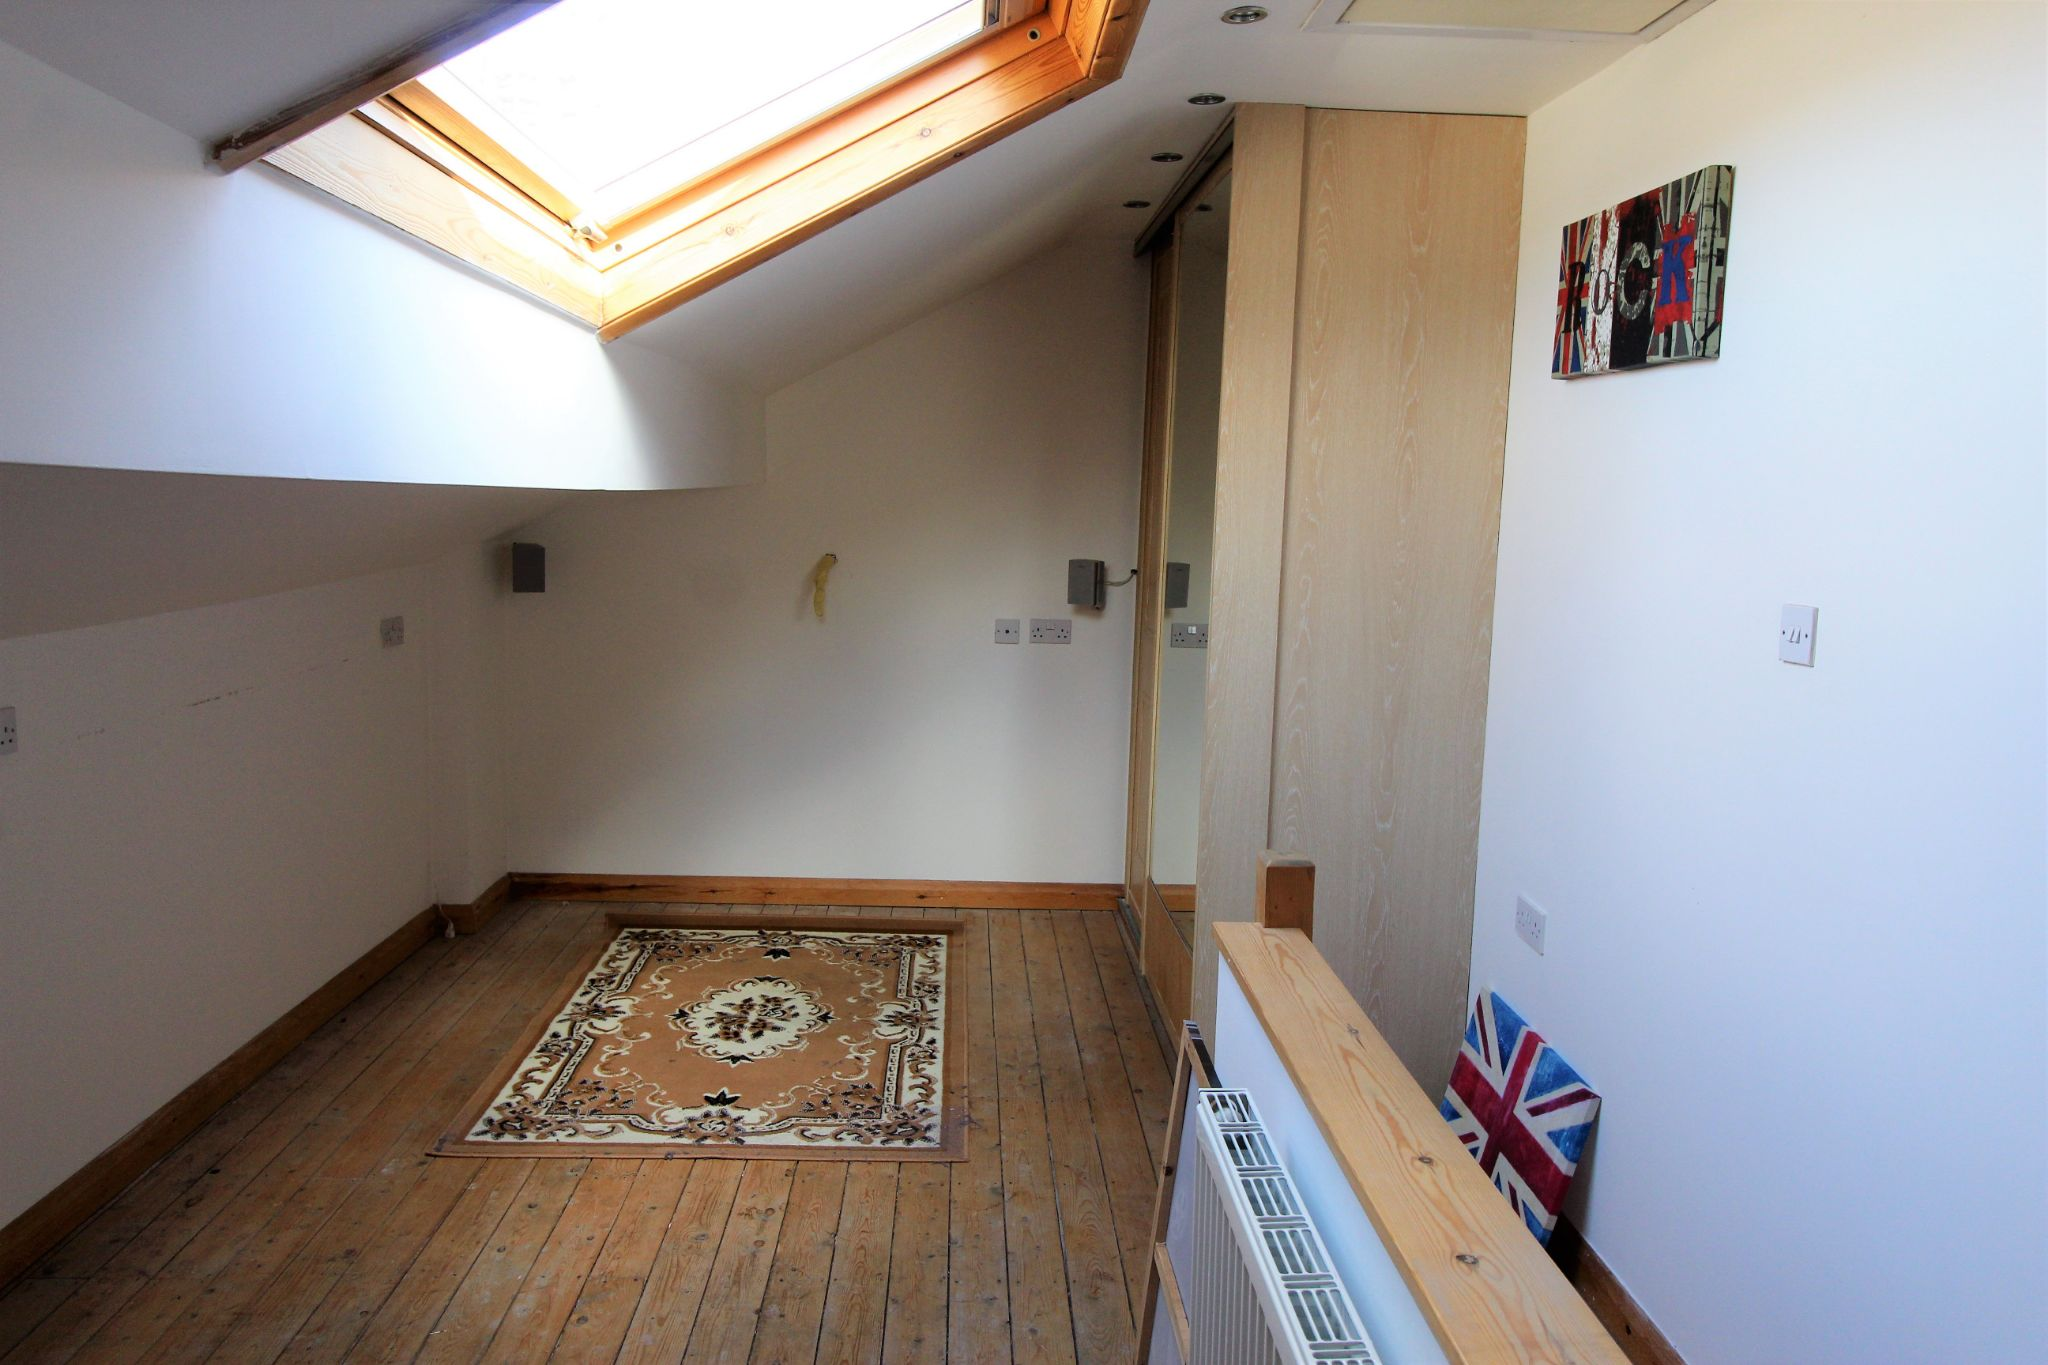 3 bedroom mid terraced house Let Agreed in Brighouse - Bedroom 2